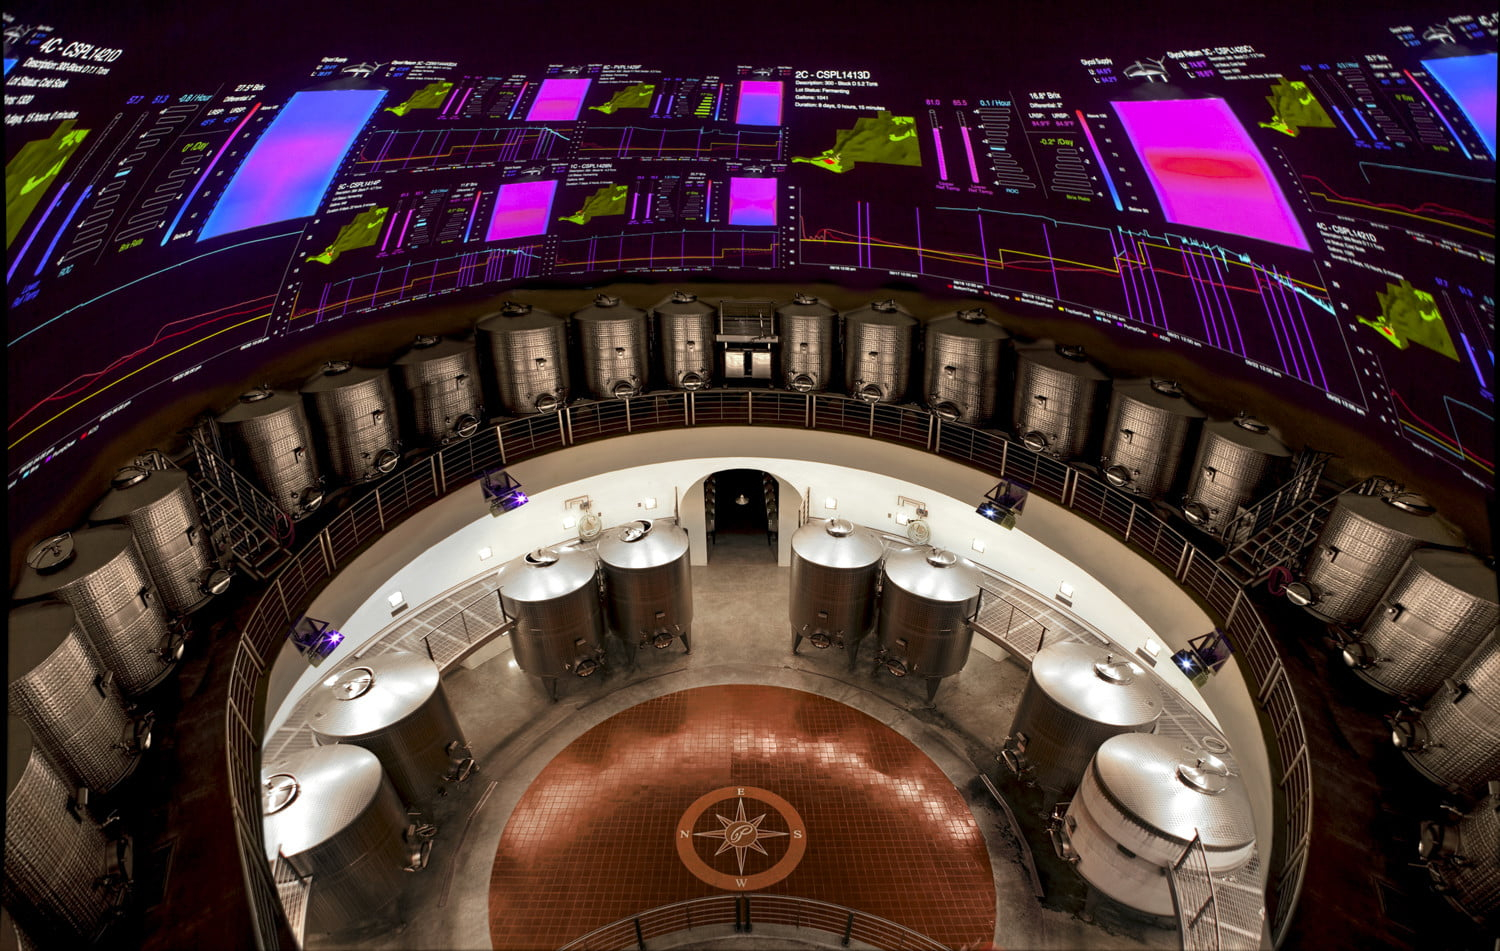 The winery of the future looks like something Bruce Wayne would run